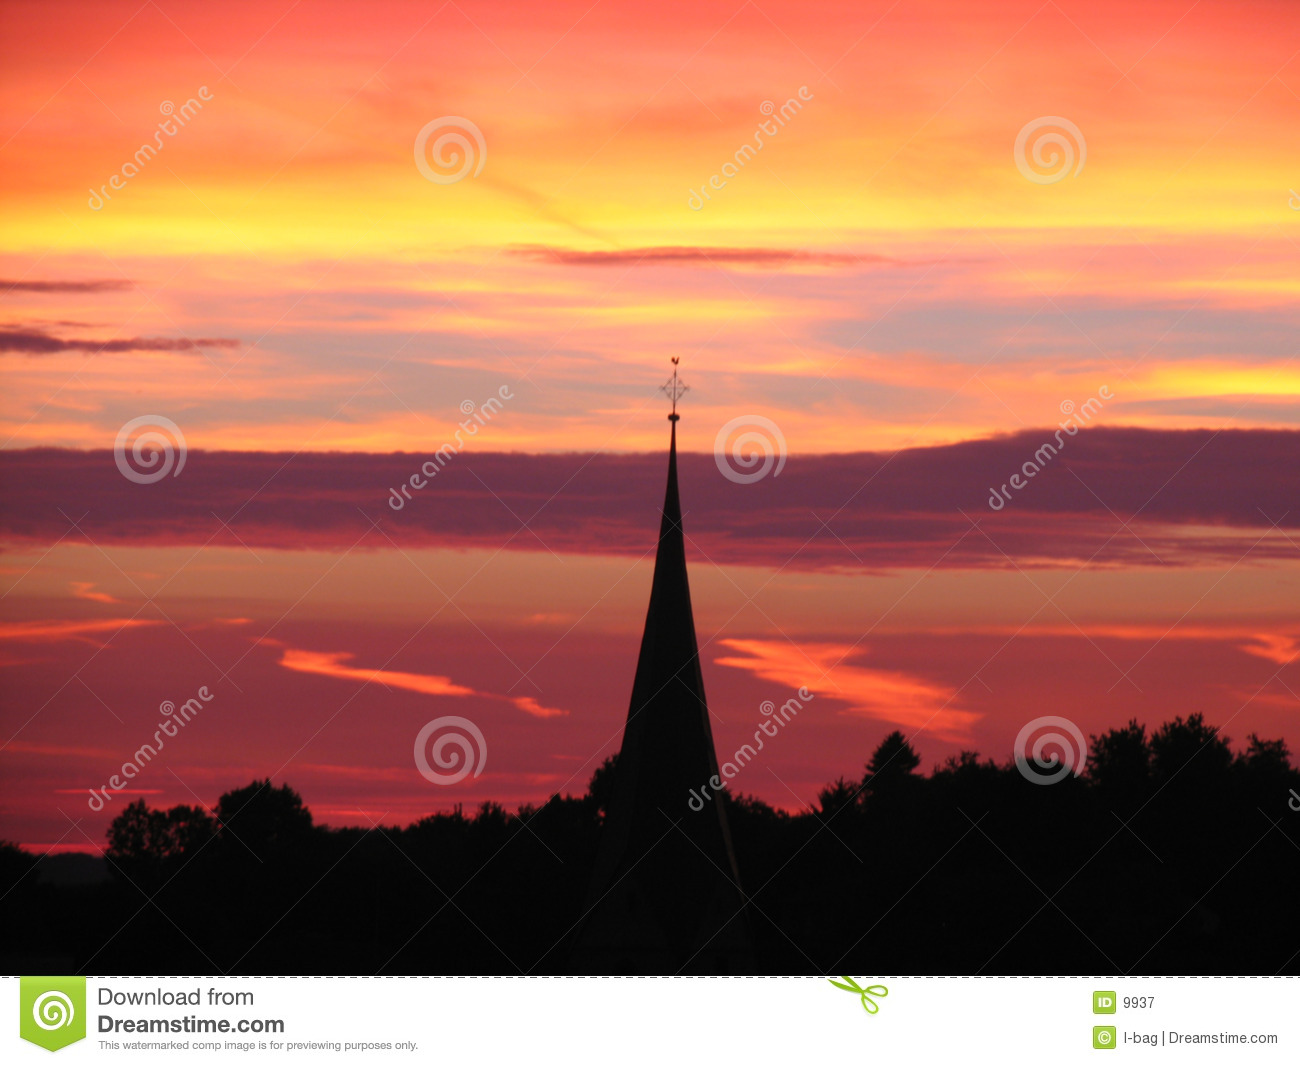 Sunset behind church tower